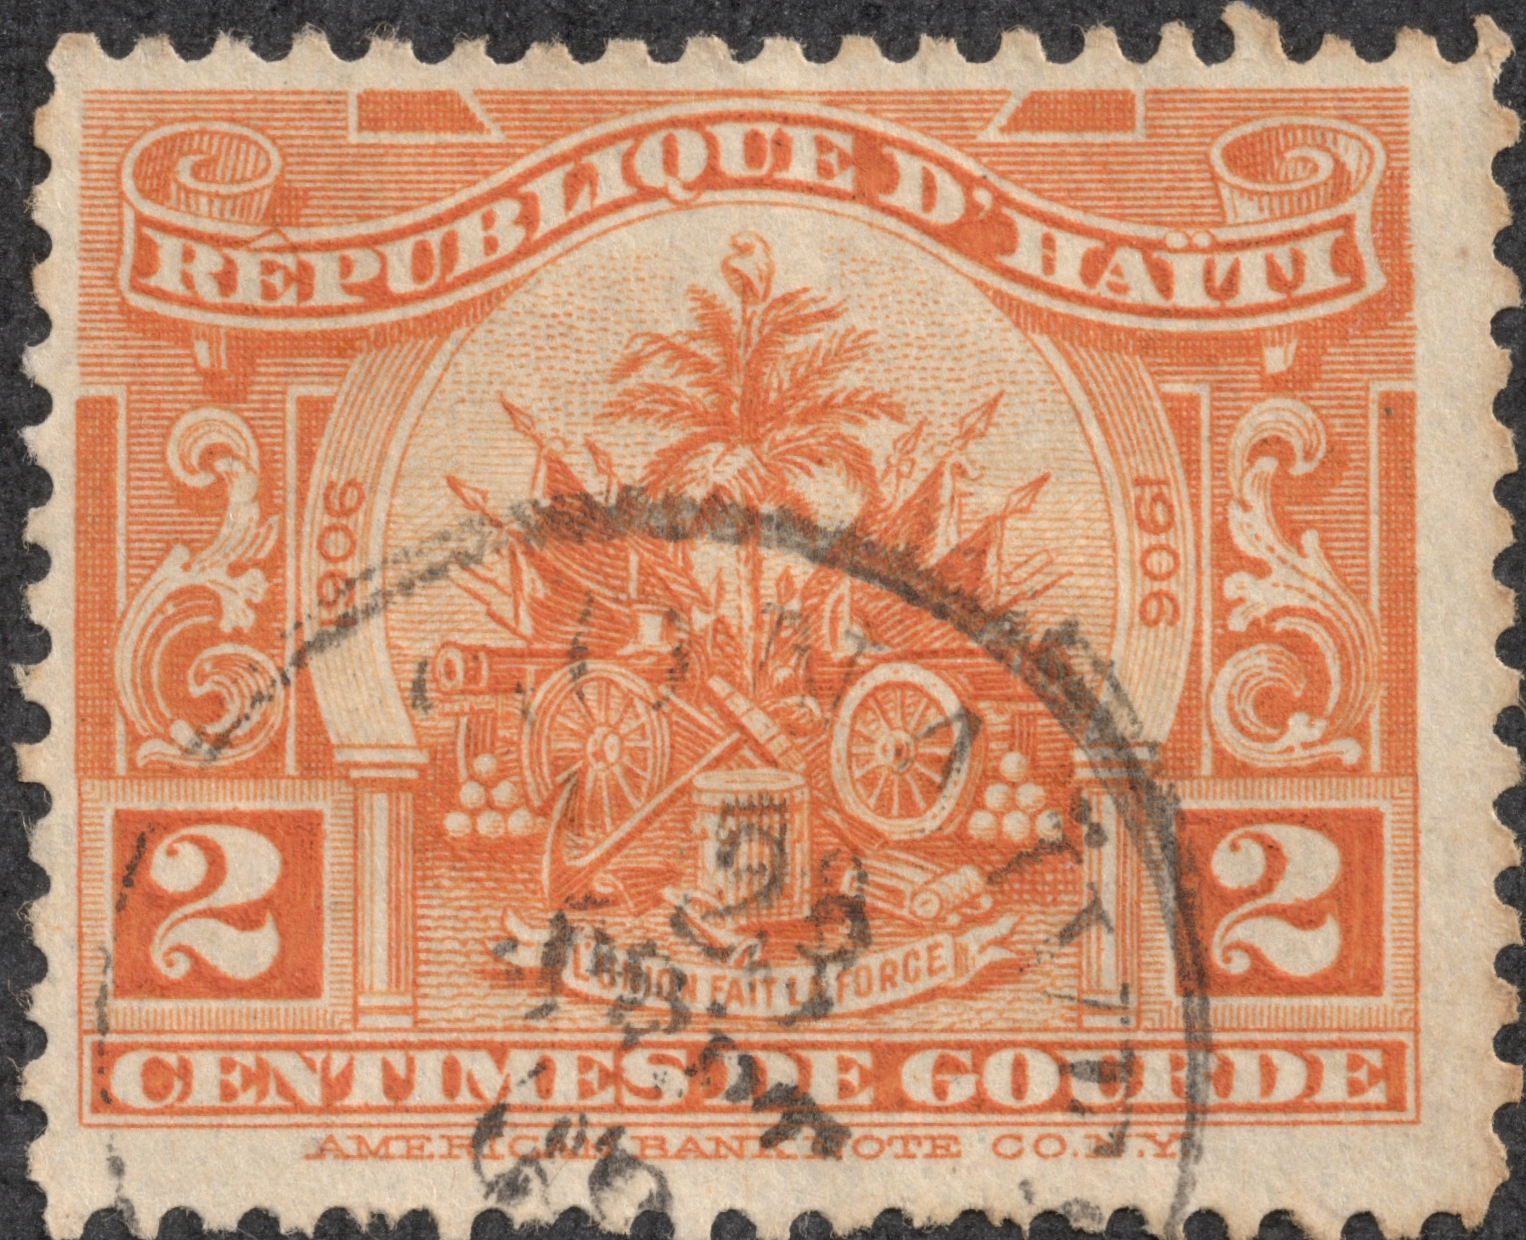 Related to rare foreign postage stamps most valuable foreign stamps